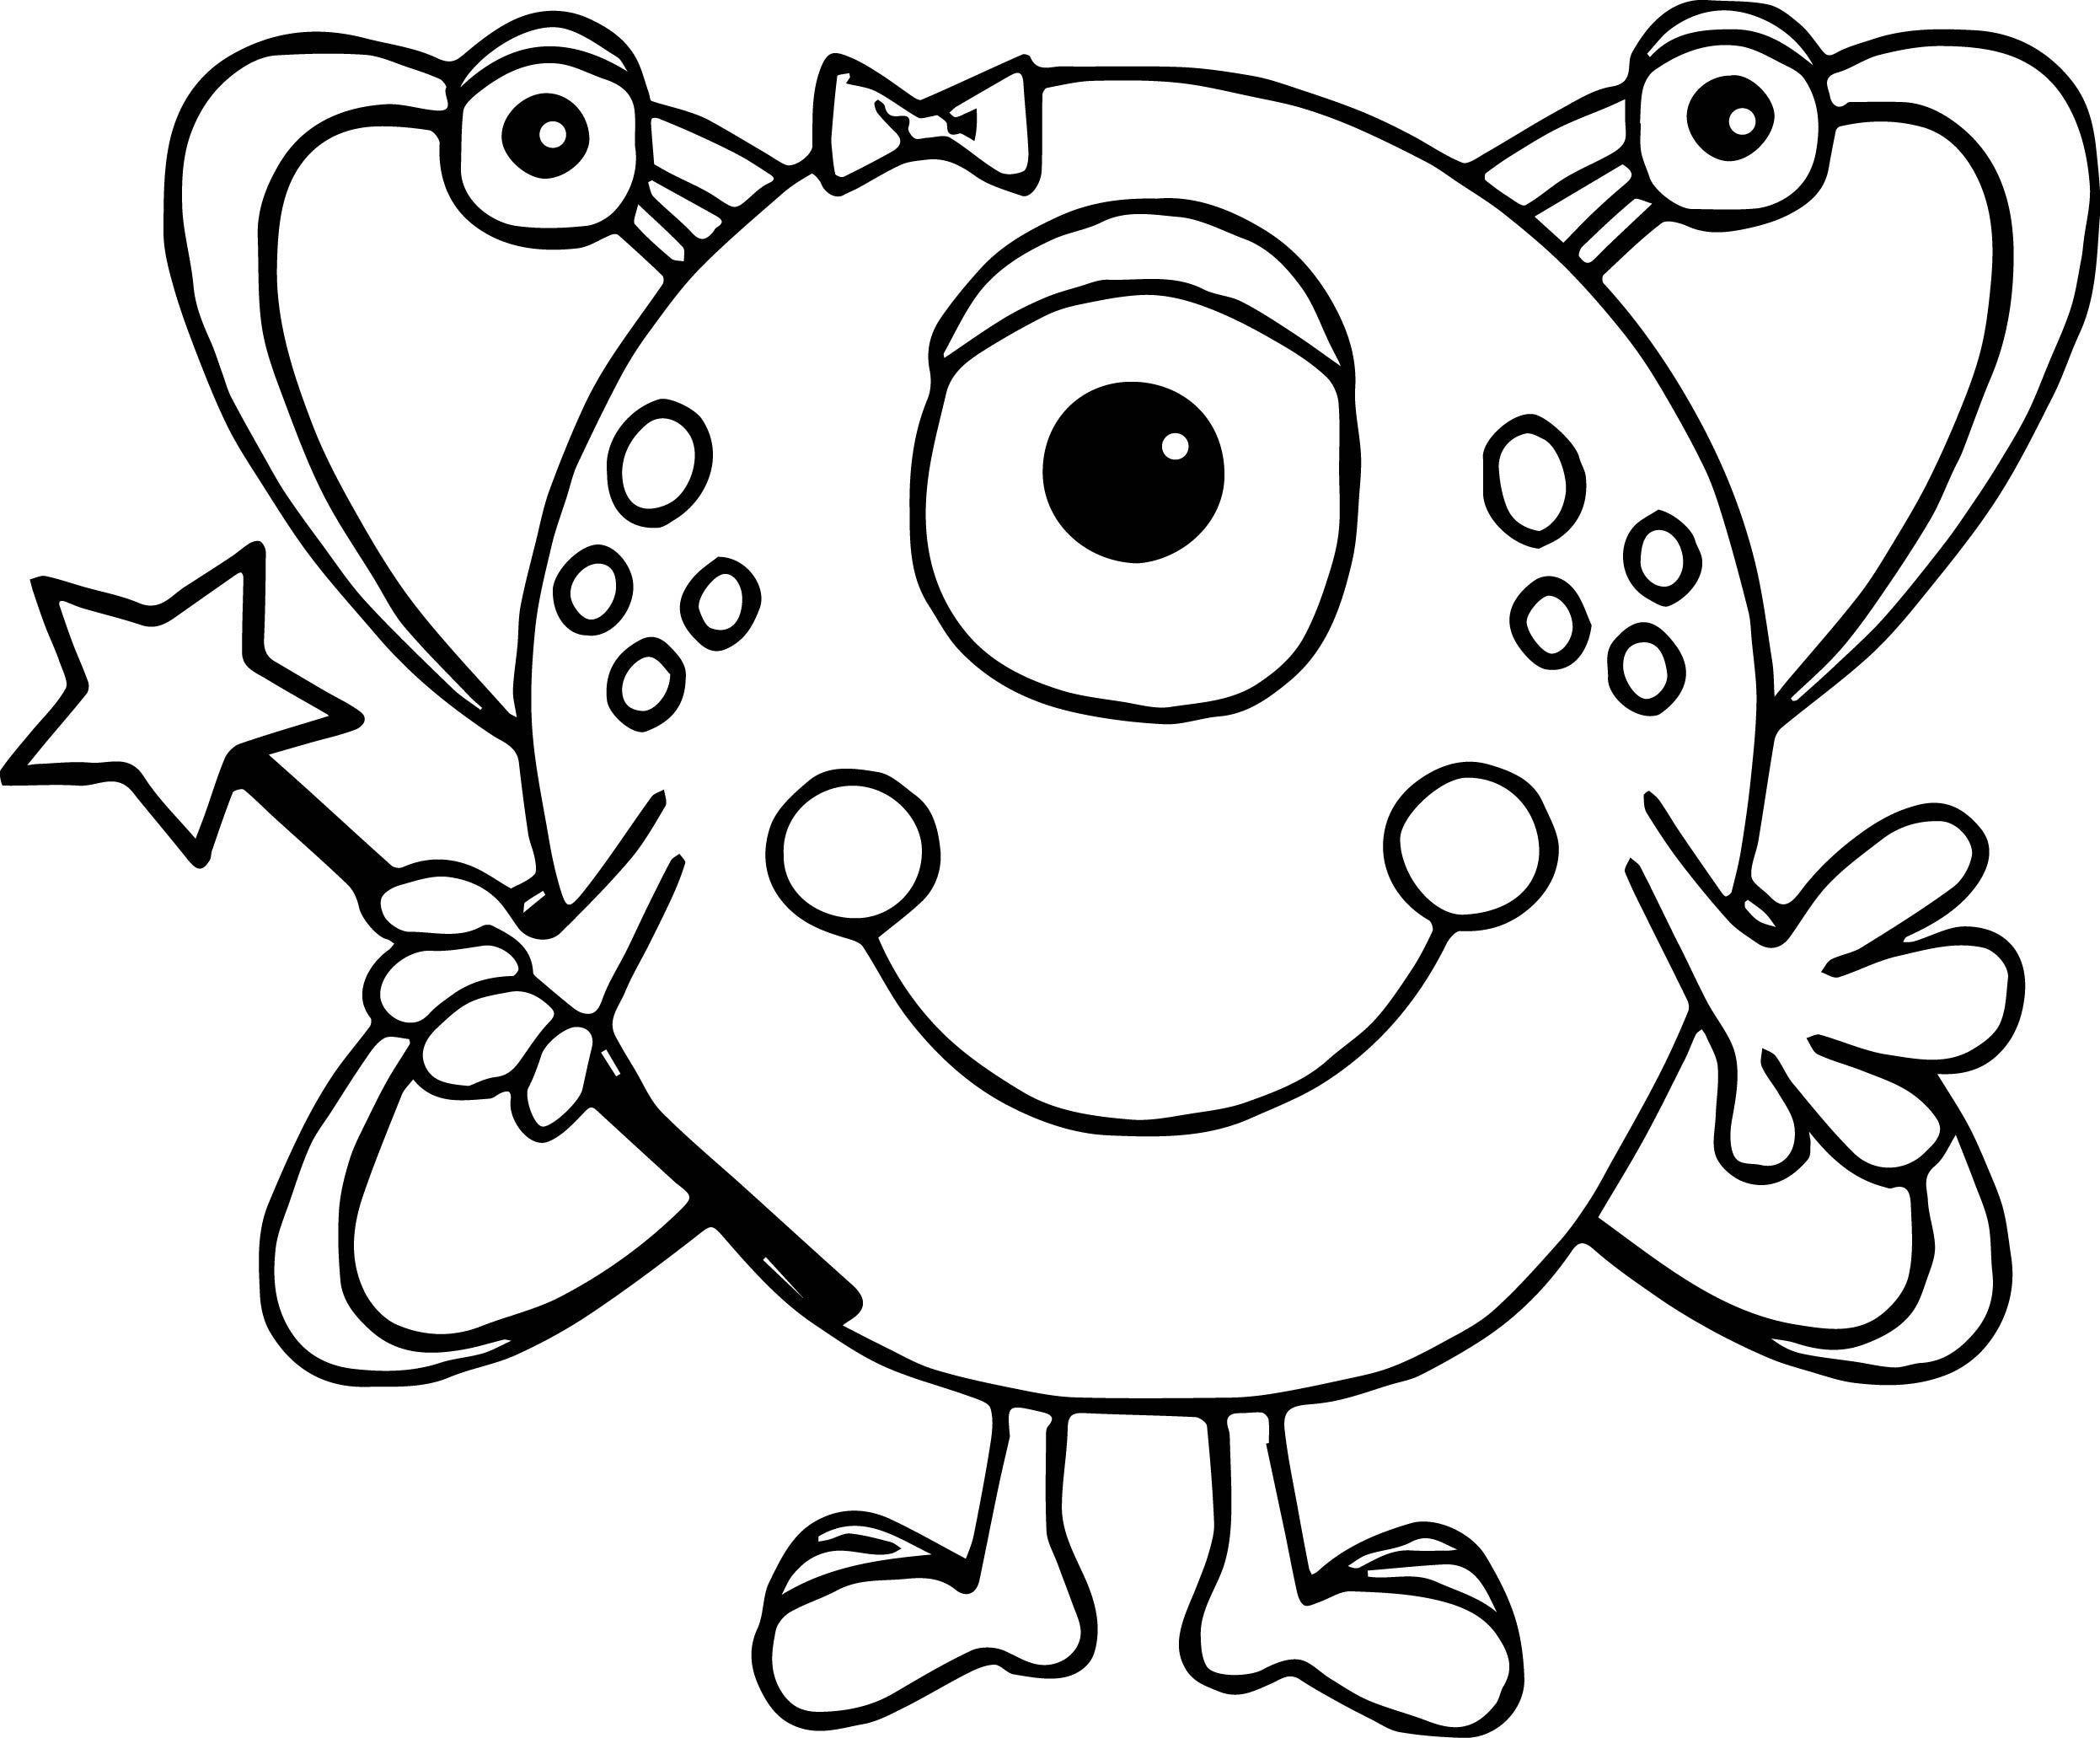 Cartoon Drawing Monsters Cartoon Drawing Monsters How To Draw Cartoons Monster 2 Dr Monster Coloring Pages Monster Truck Coloring Pages Monster Drawing